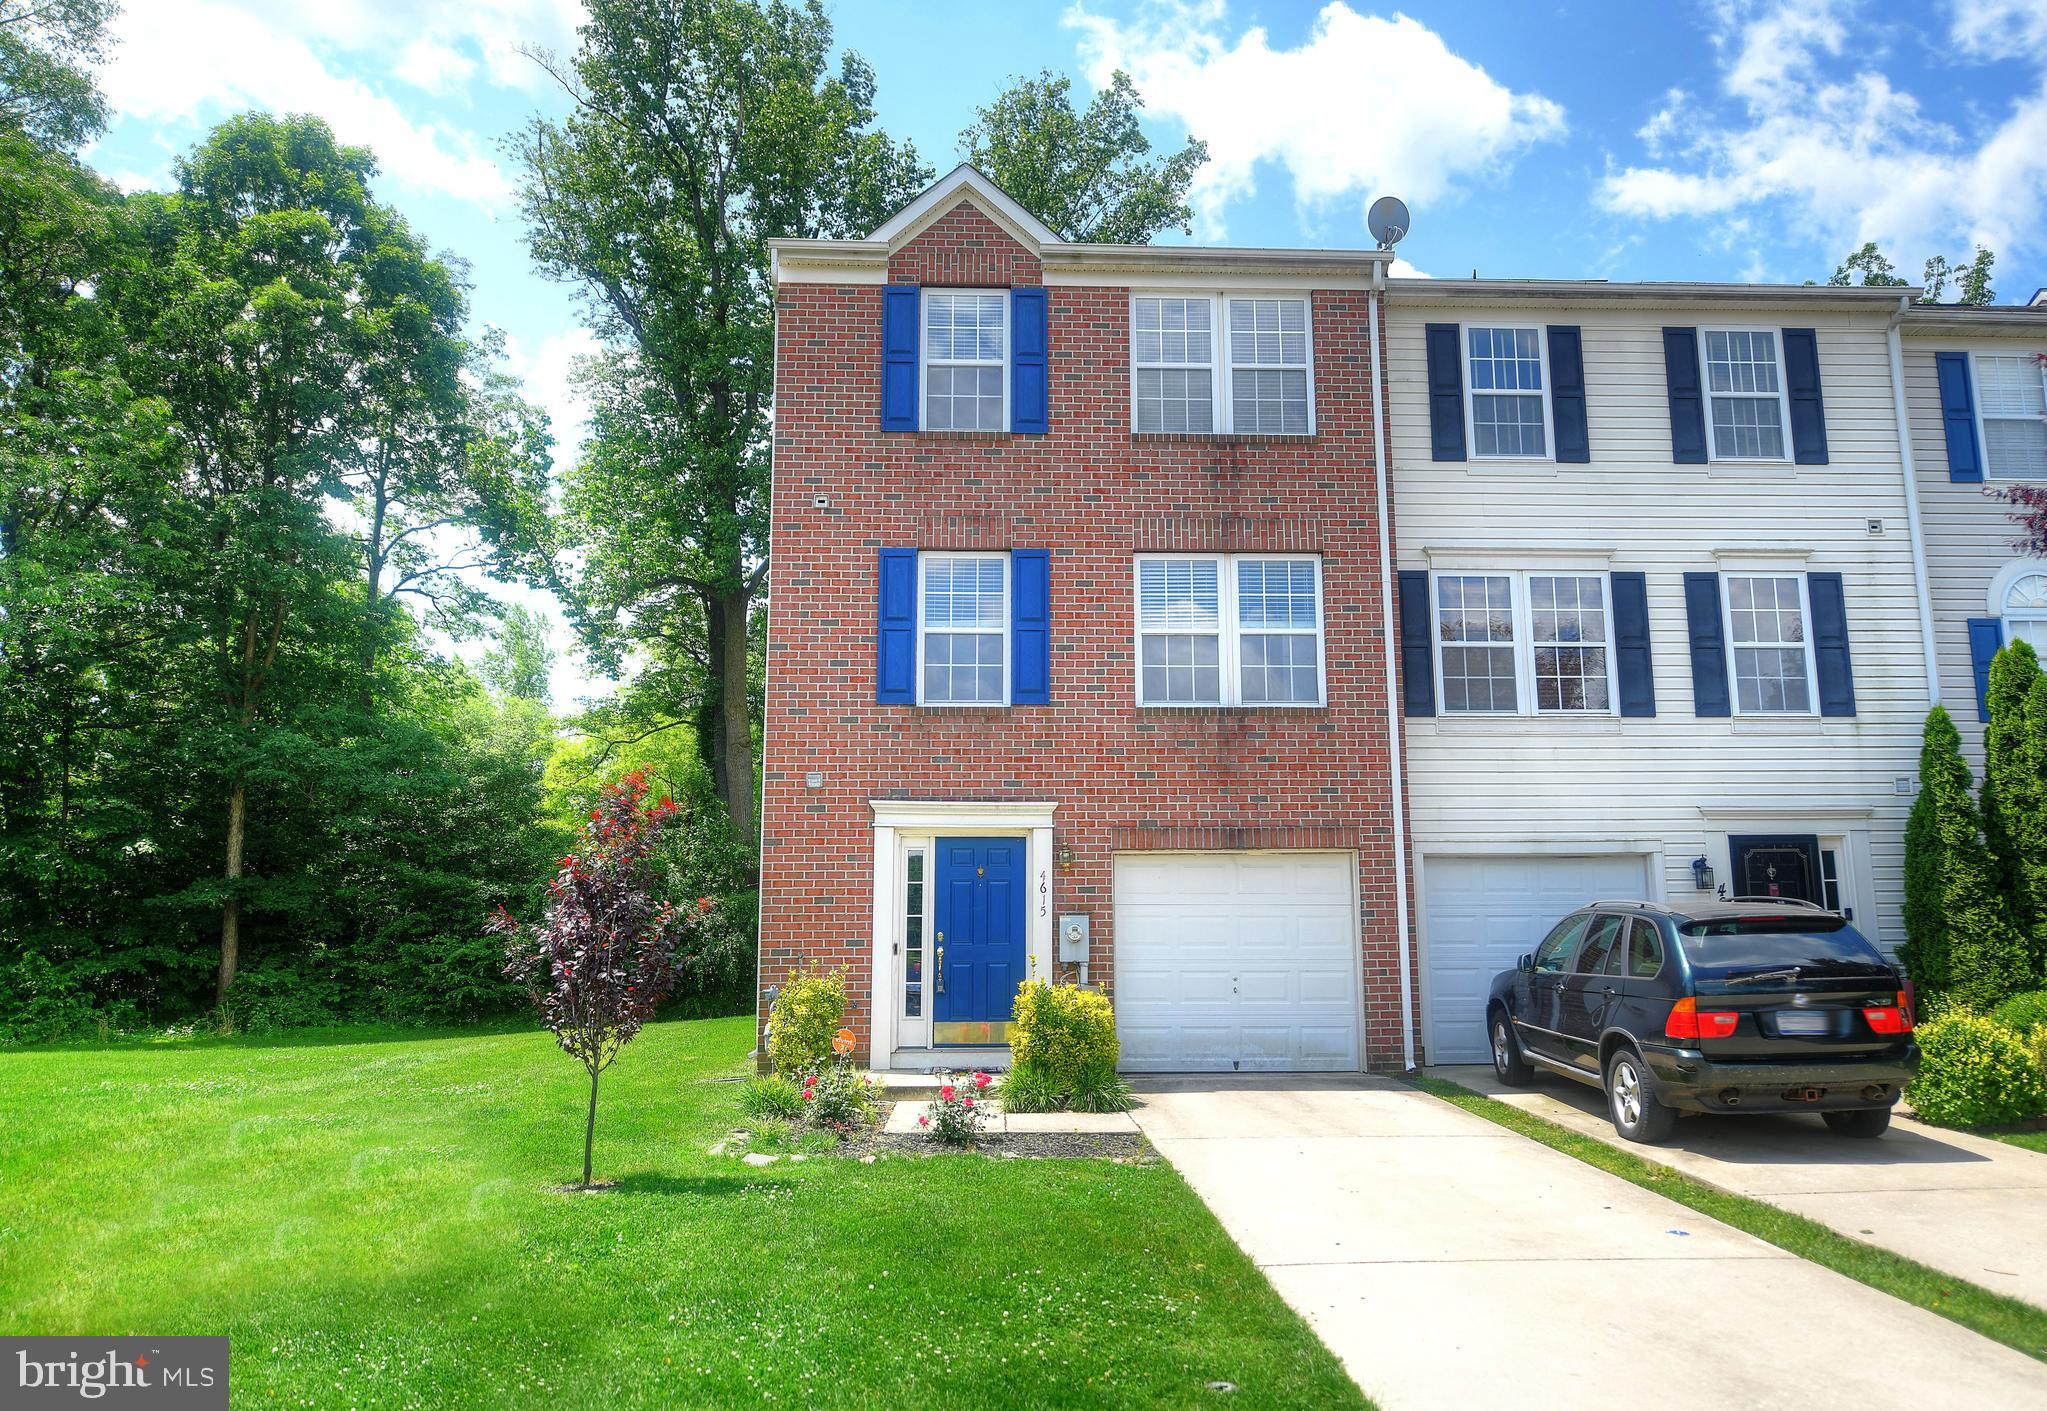 4615 HARRIER WAY, BELCAMP, MD 21017